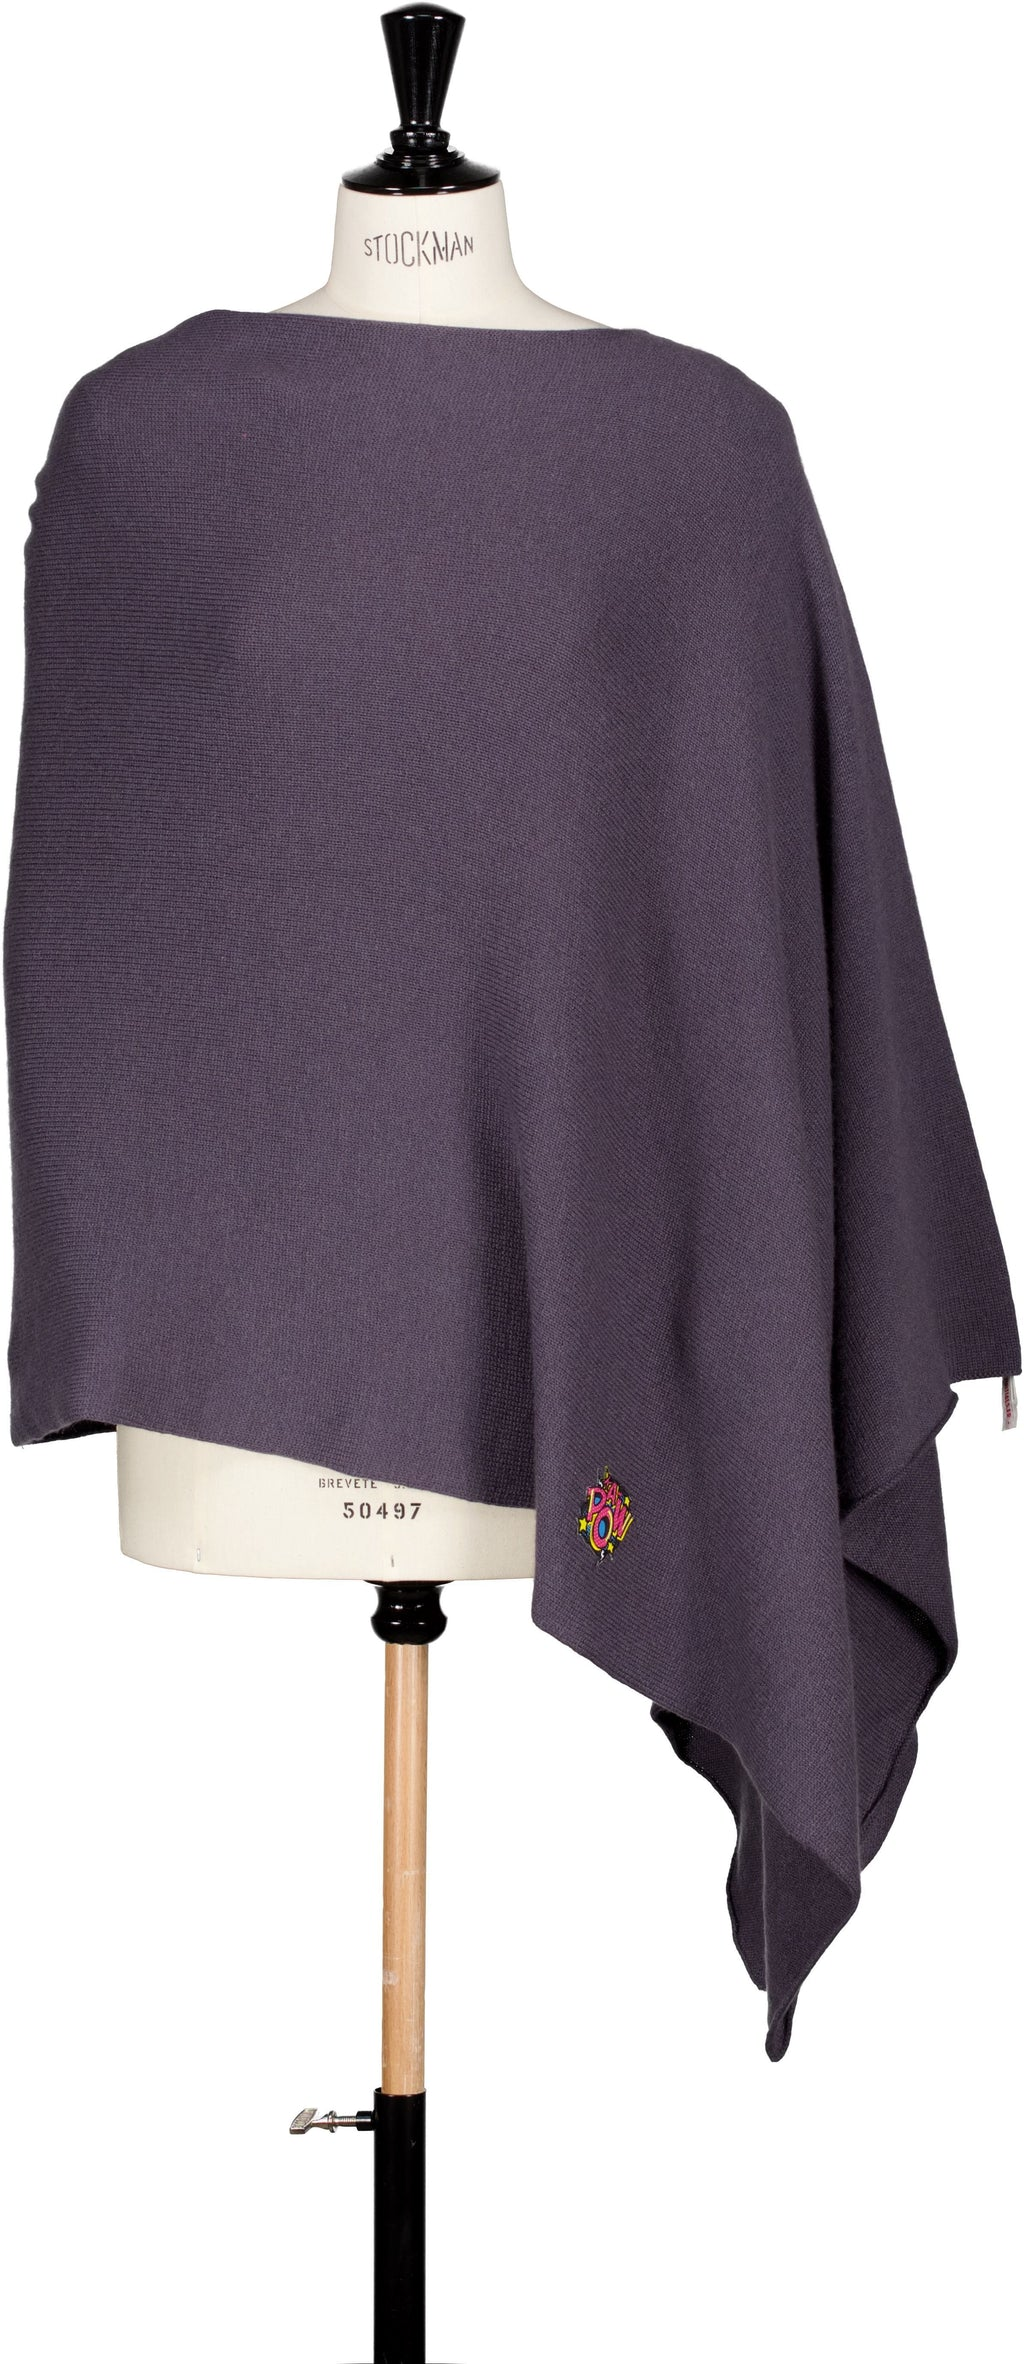 Maxi poncho avec patch Evesome maille serrée 100% cachemire - Maxi poncho with Evesome patch tight mesh 100% cashmere